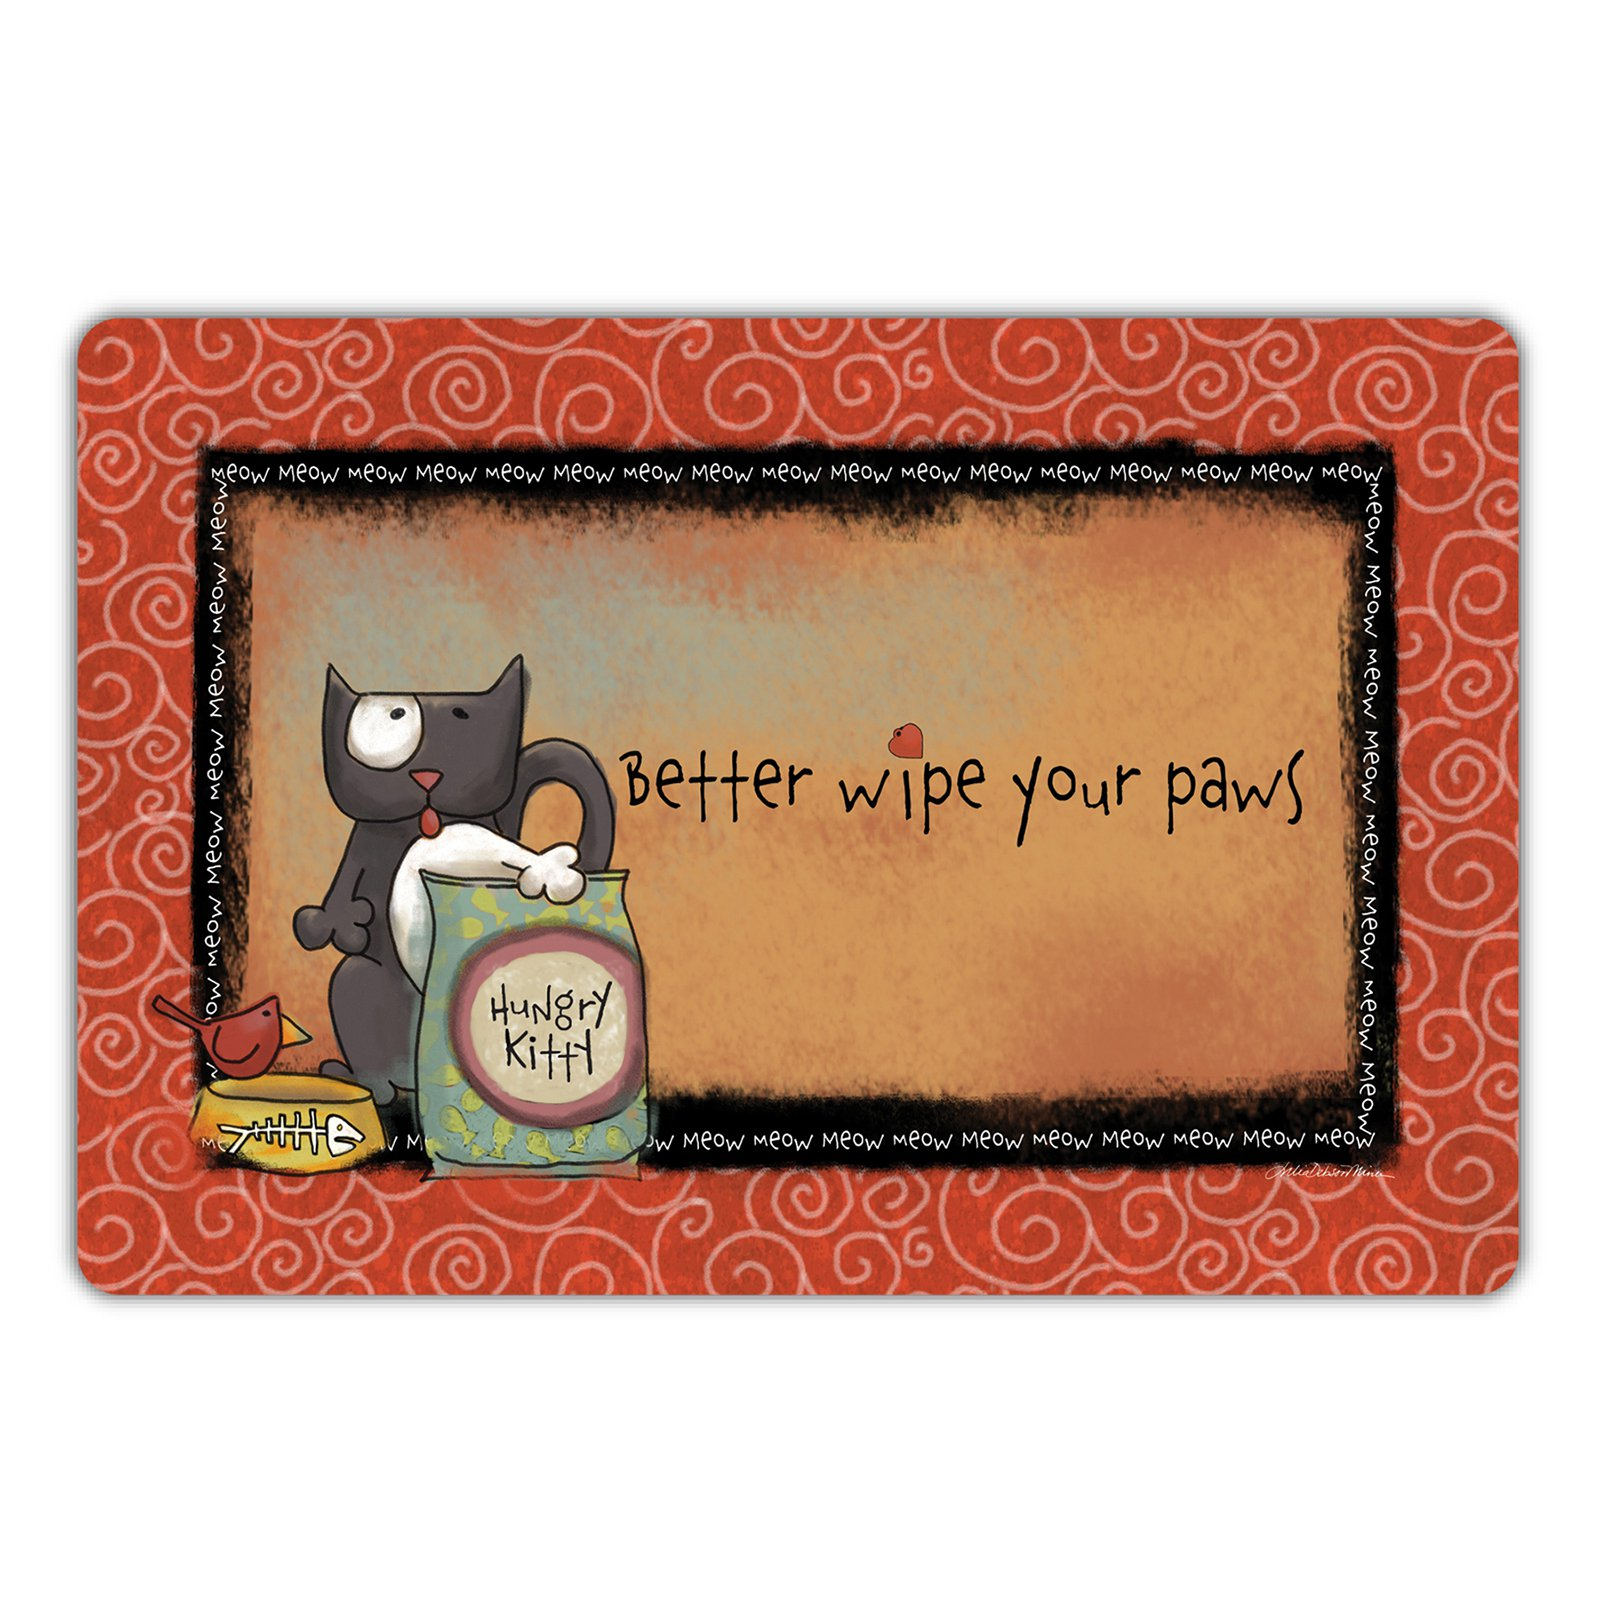 Drymate Cat Collection Welcome Mat - Hungry Kitty